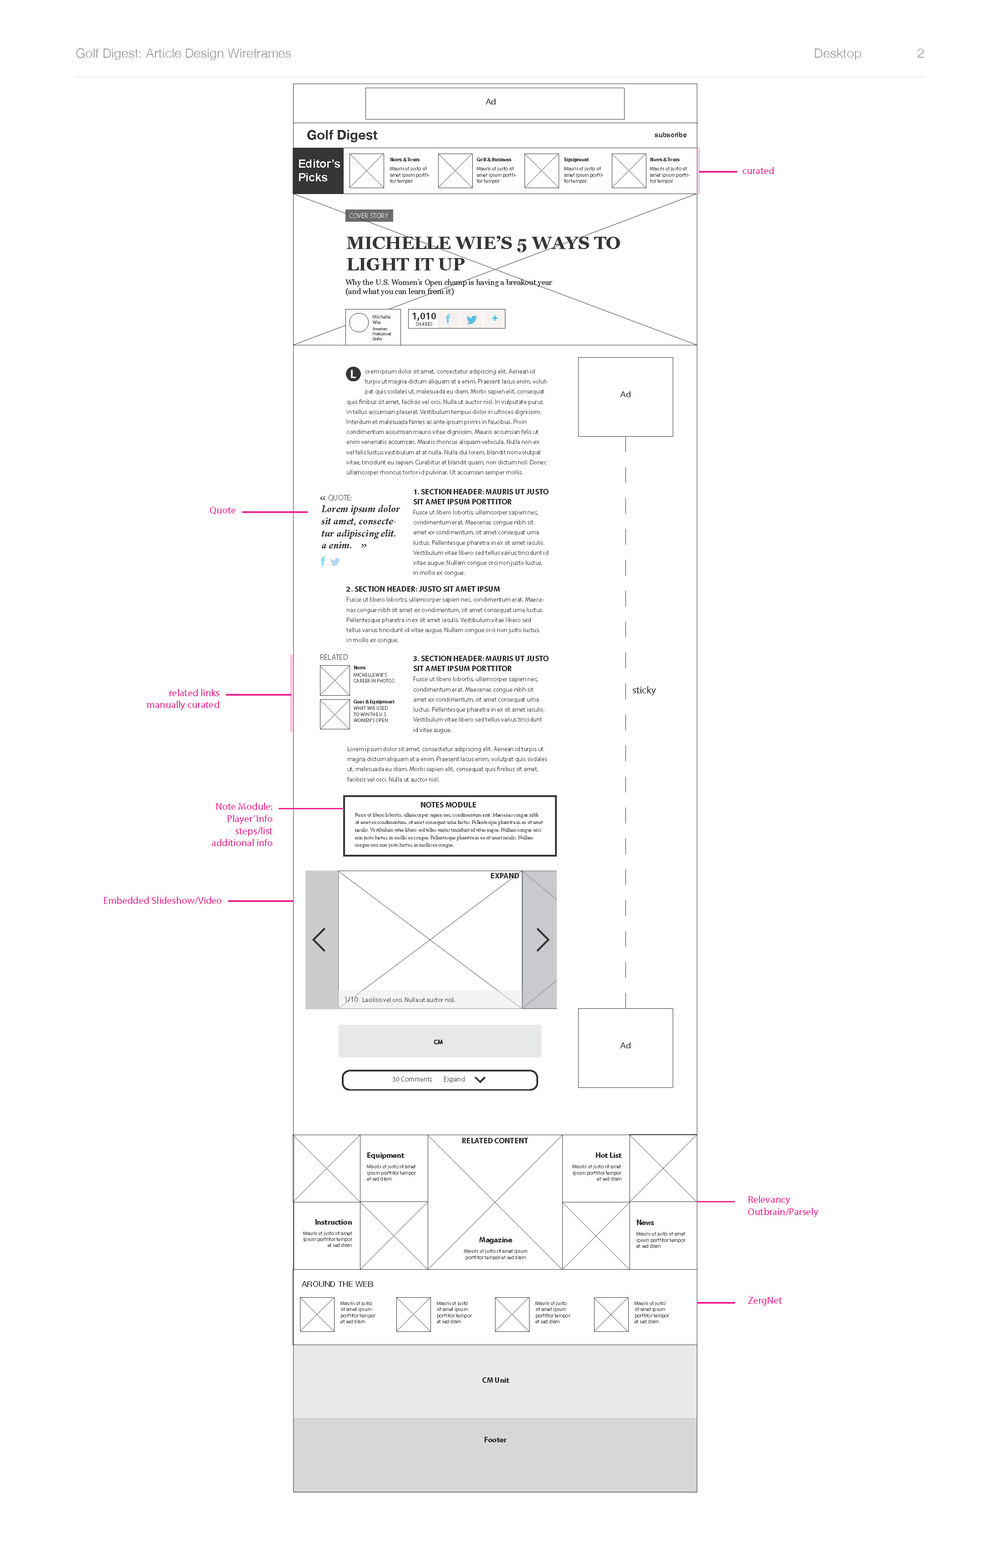 GD_Article_Wireframes_v2_Page_2.jpg